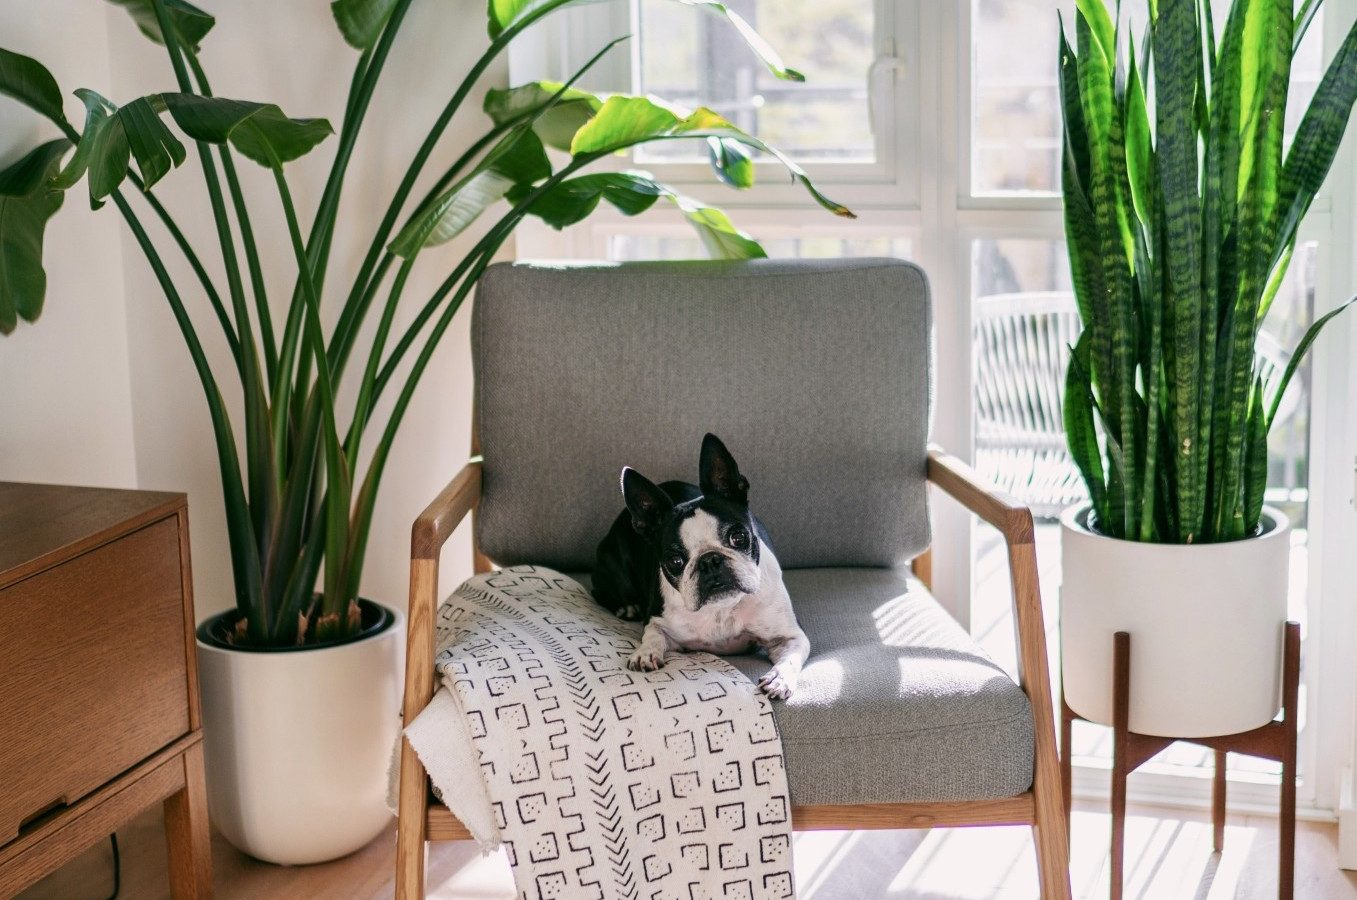 dog-sitting-on-accent-chair_t20_OzjBXL